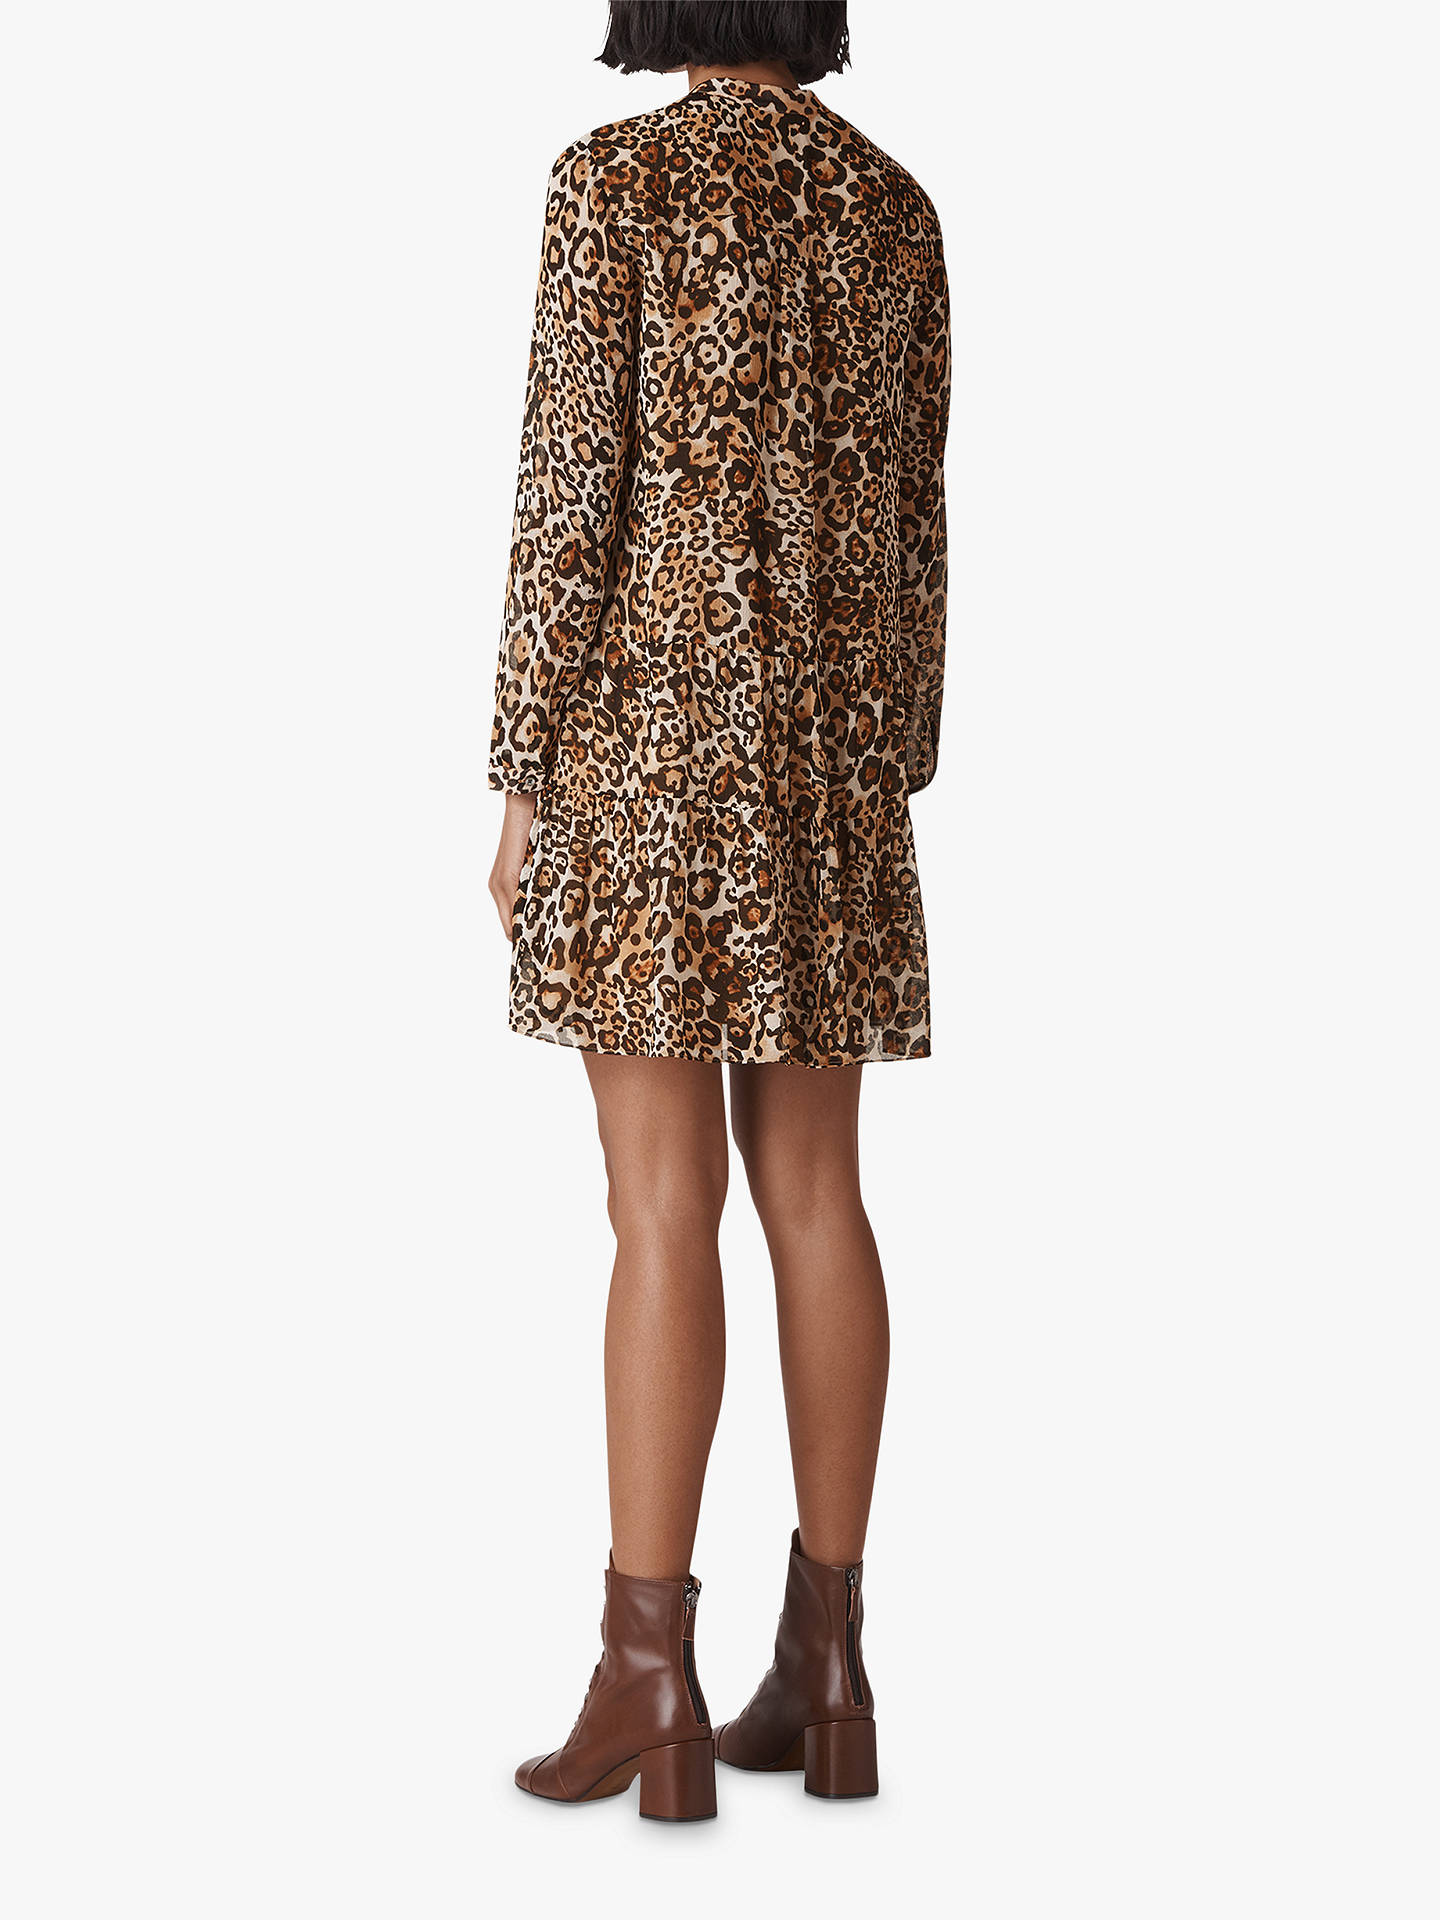 d0490c7d5fec7 ... Buy Whistles Animal Print Shirt Dress